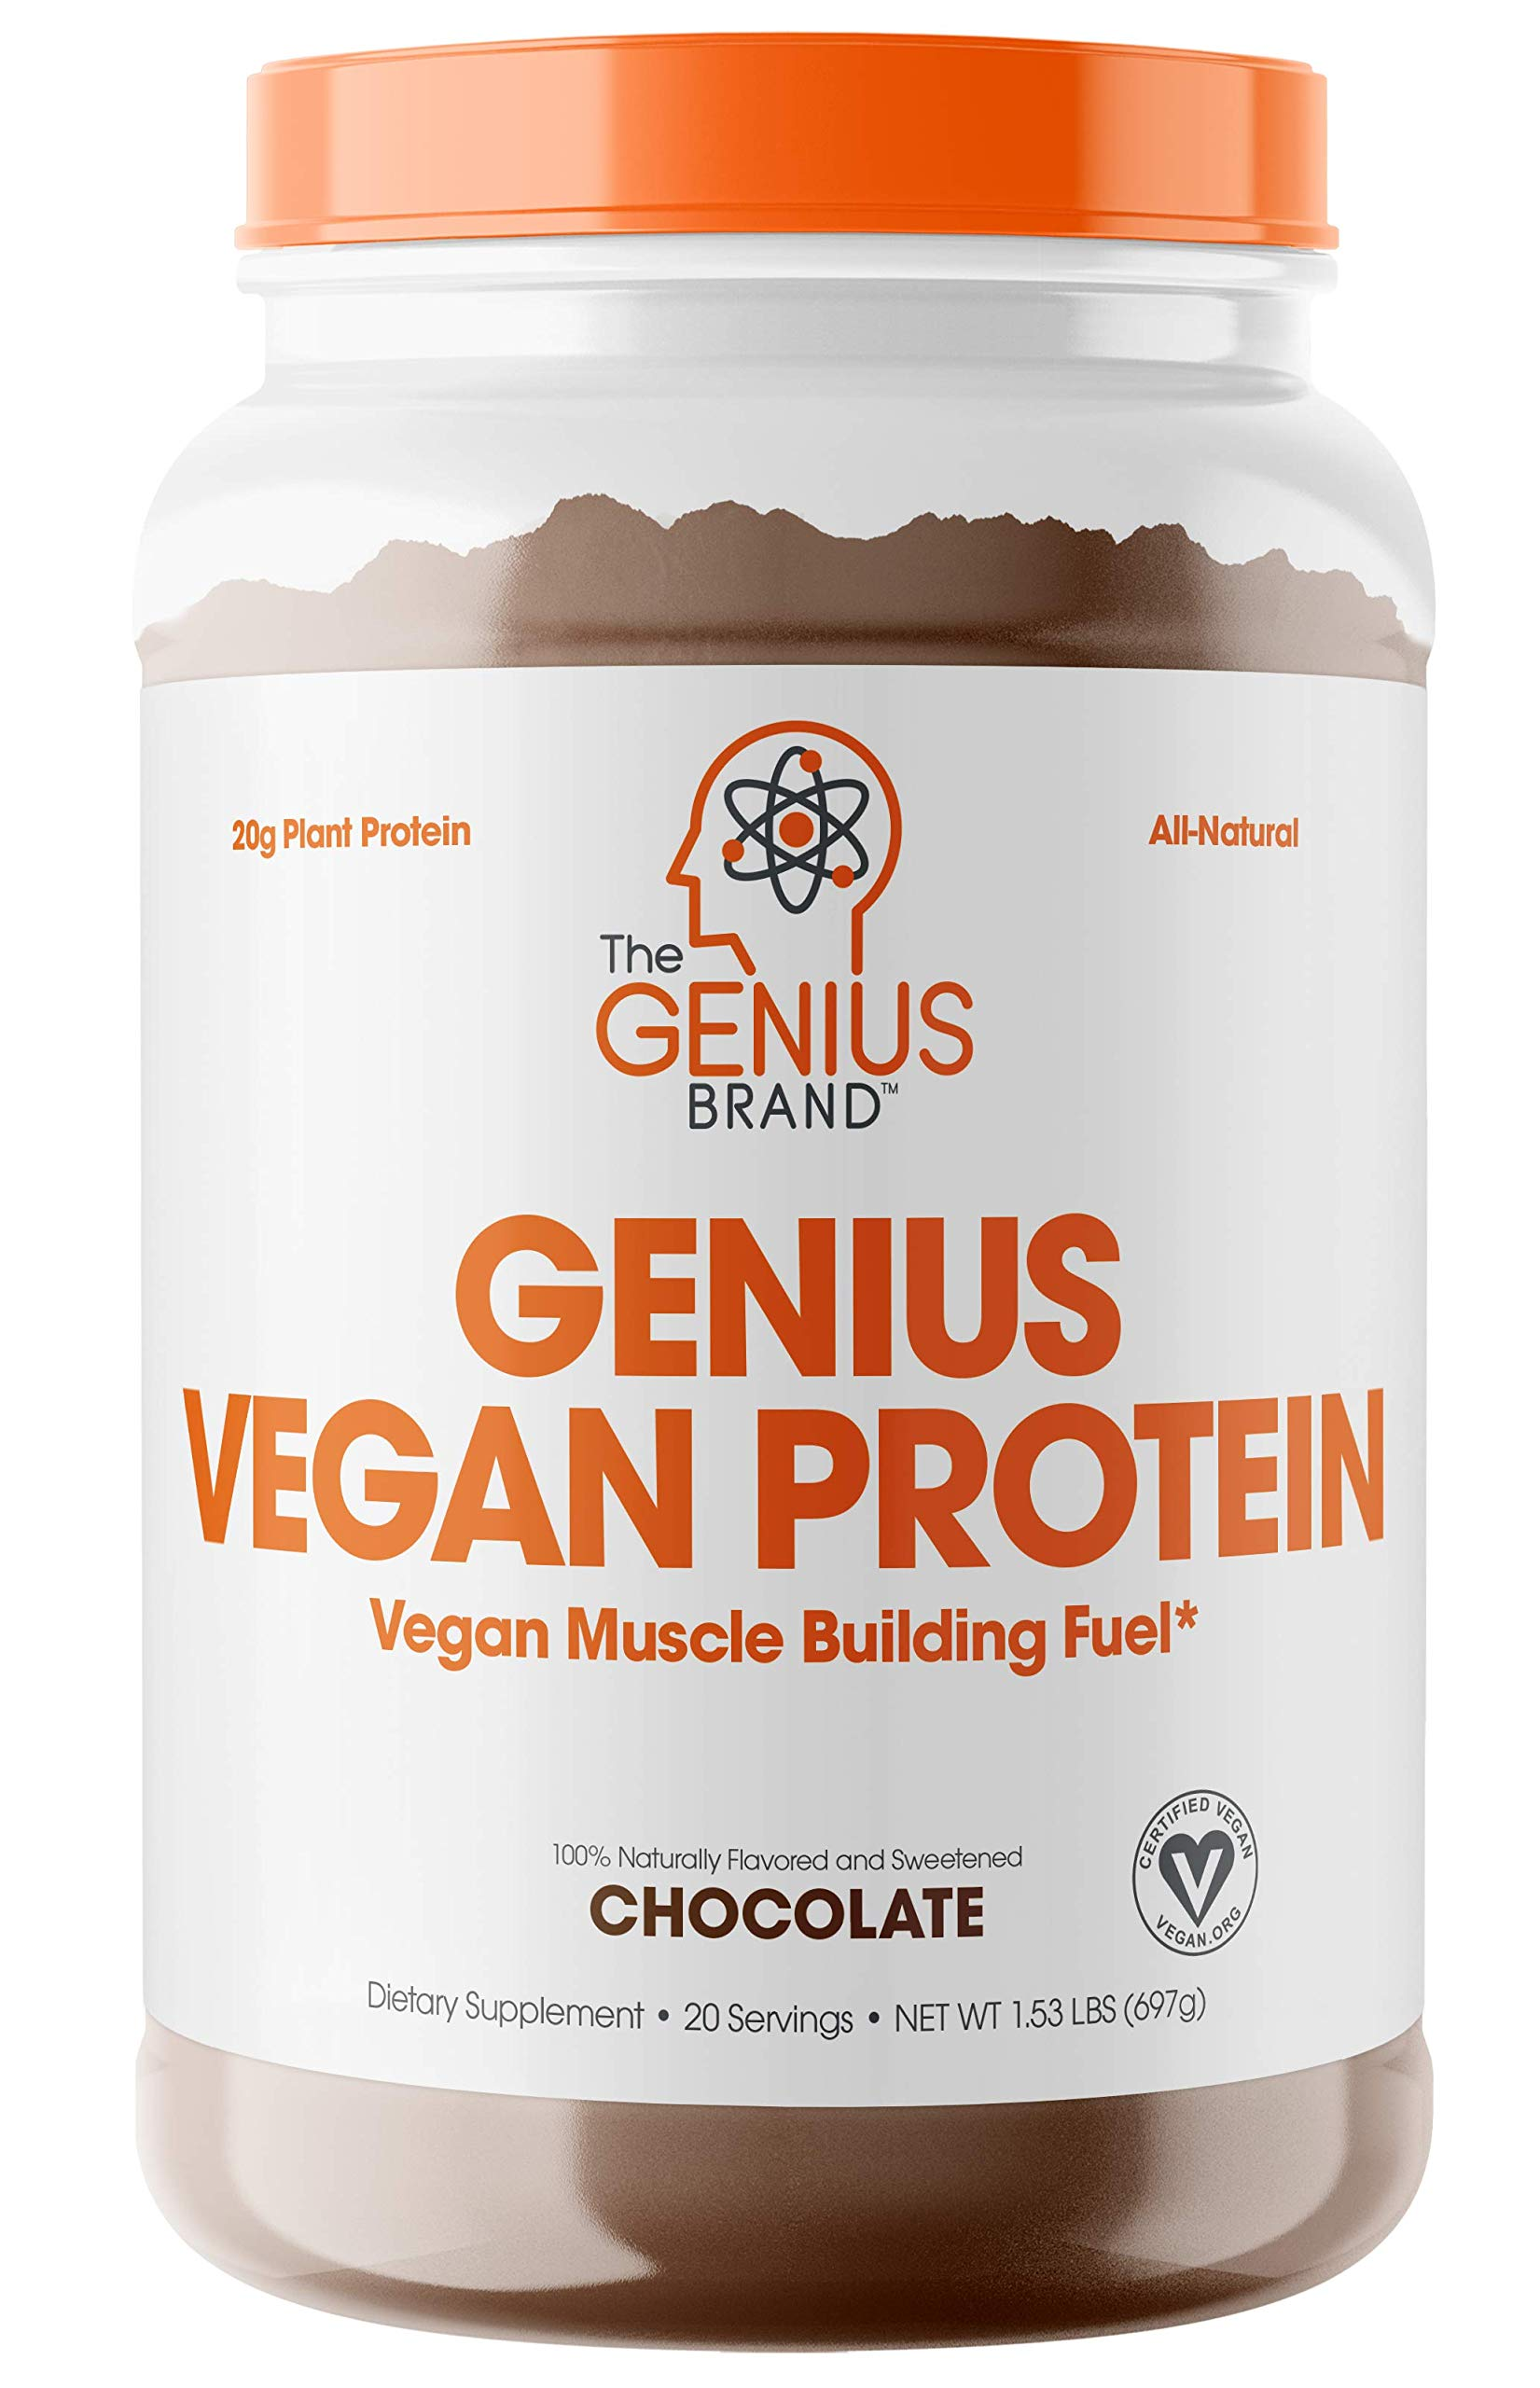 Genius Vegan Protein Powder - Plant Based Lean Muscle Building Shake | Best Pea + Pumpkin Protein Sources - Ideal Lean Body Shake for Men & Women - All in One Nutritional Sport Drink (Dairy Free) by The Genius Brand